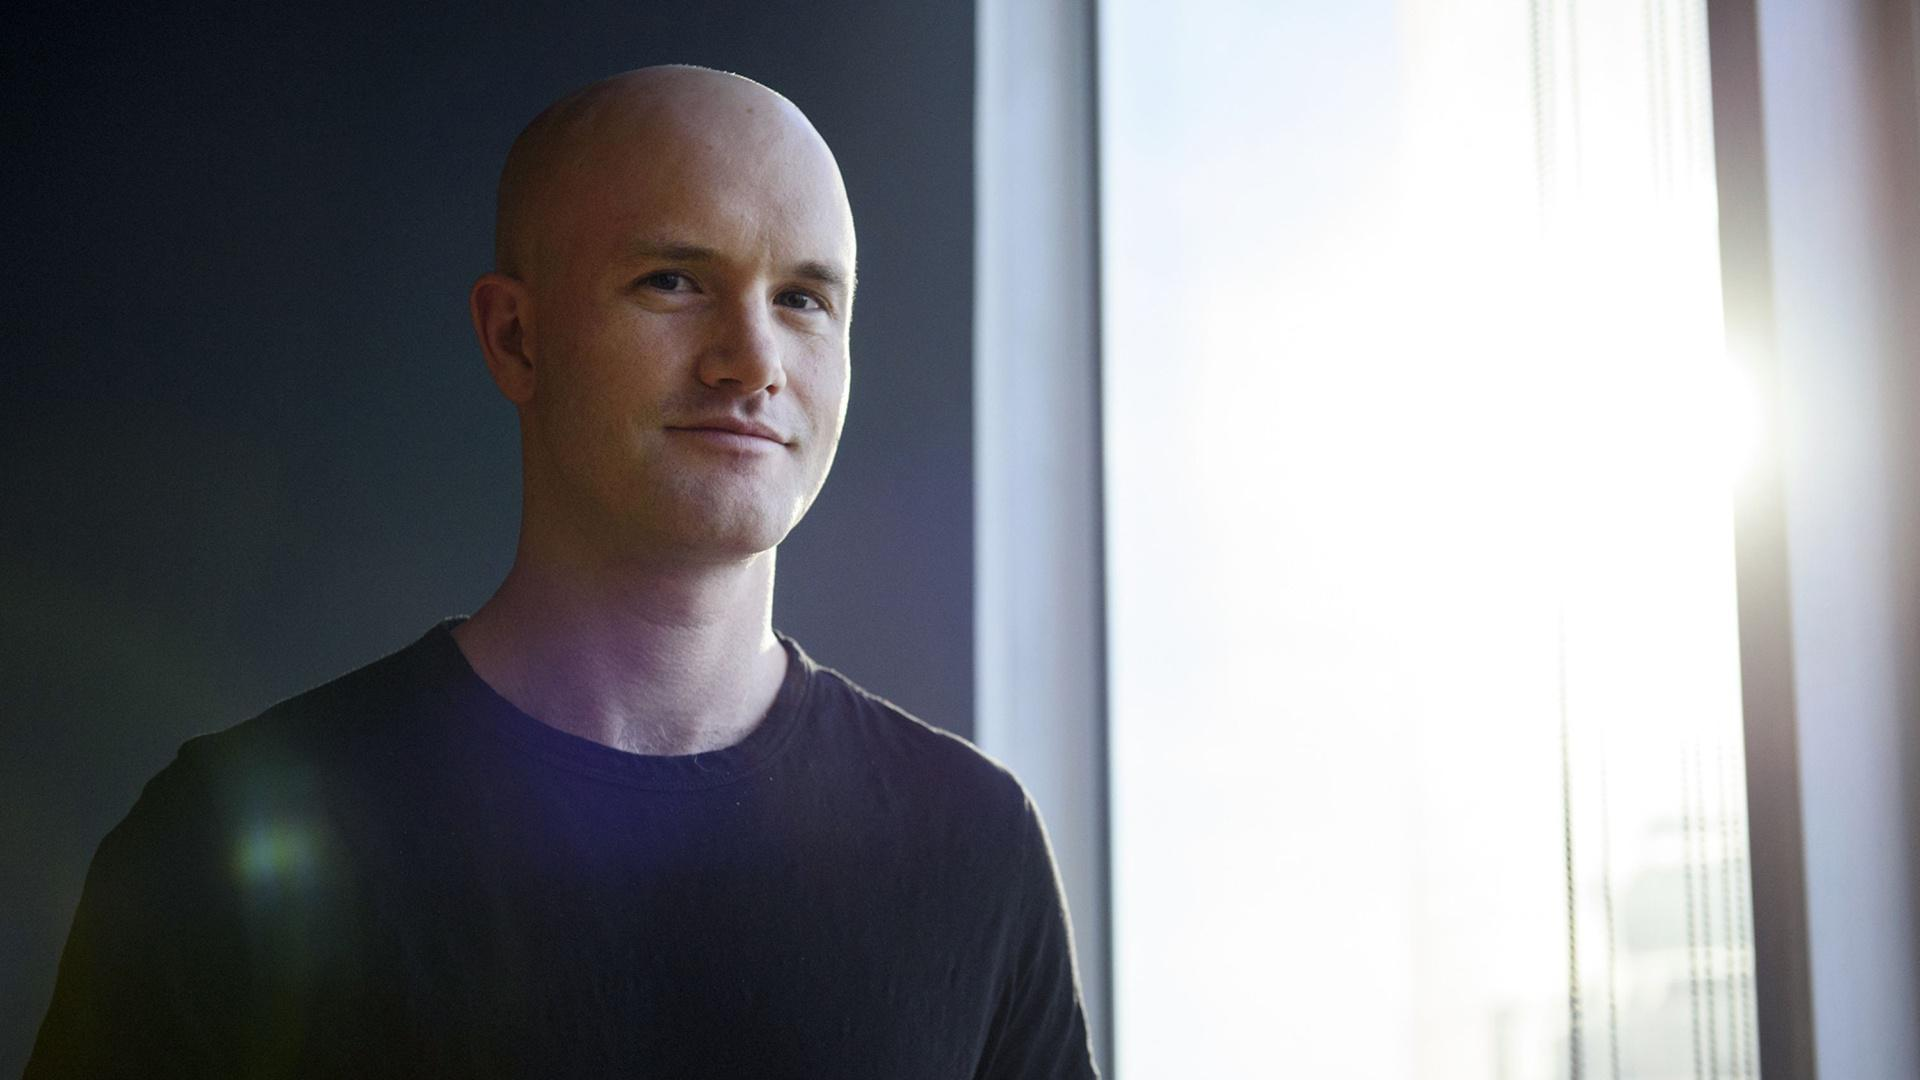 Pictured is Brian Armstrong, CEO and cofounder of Coinbase.